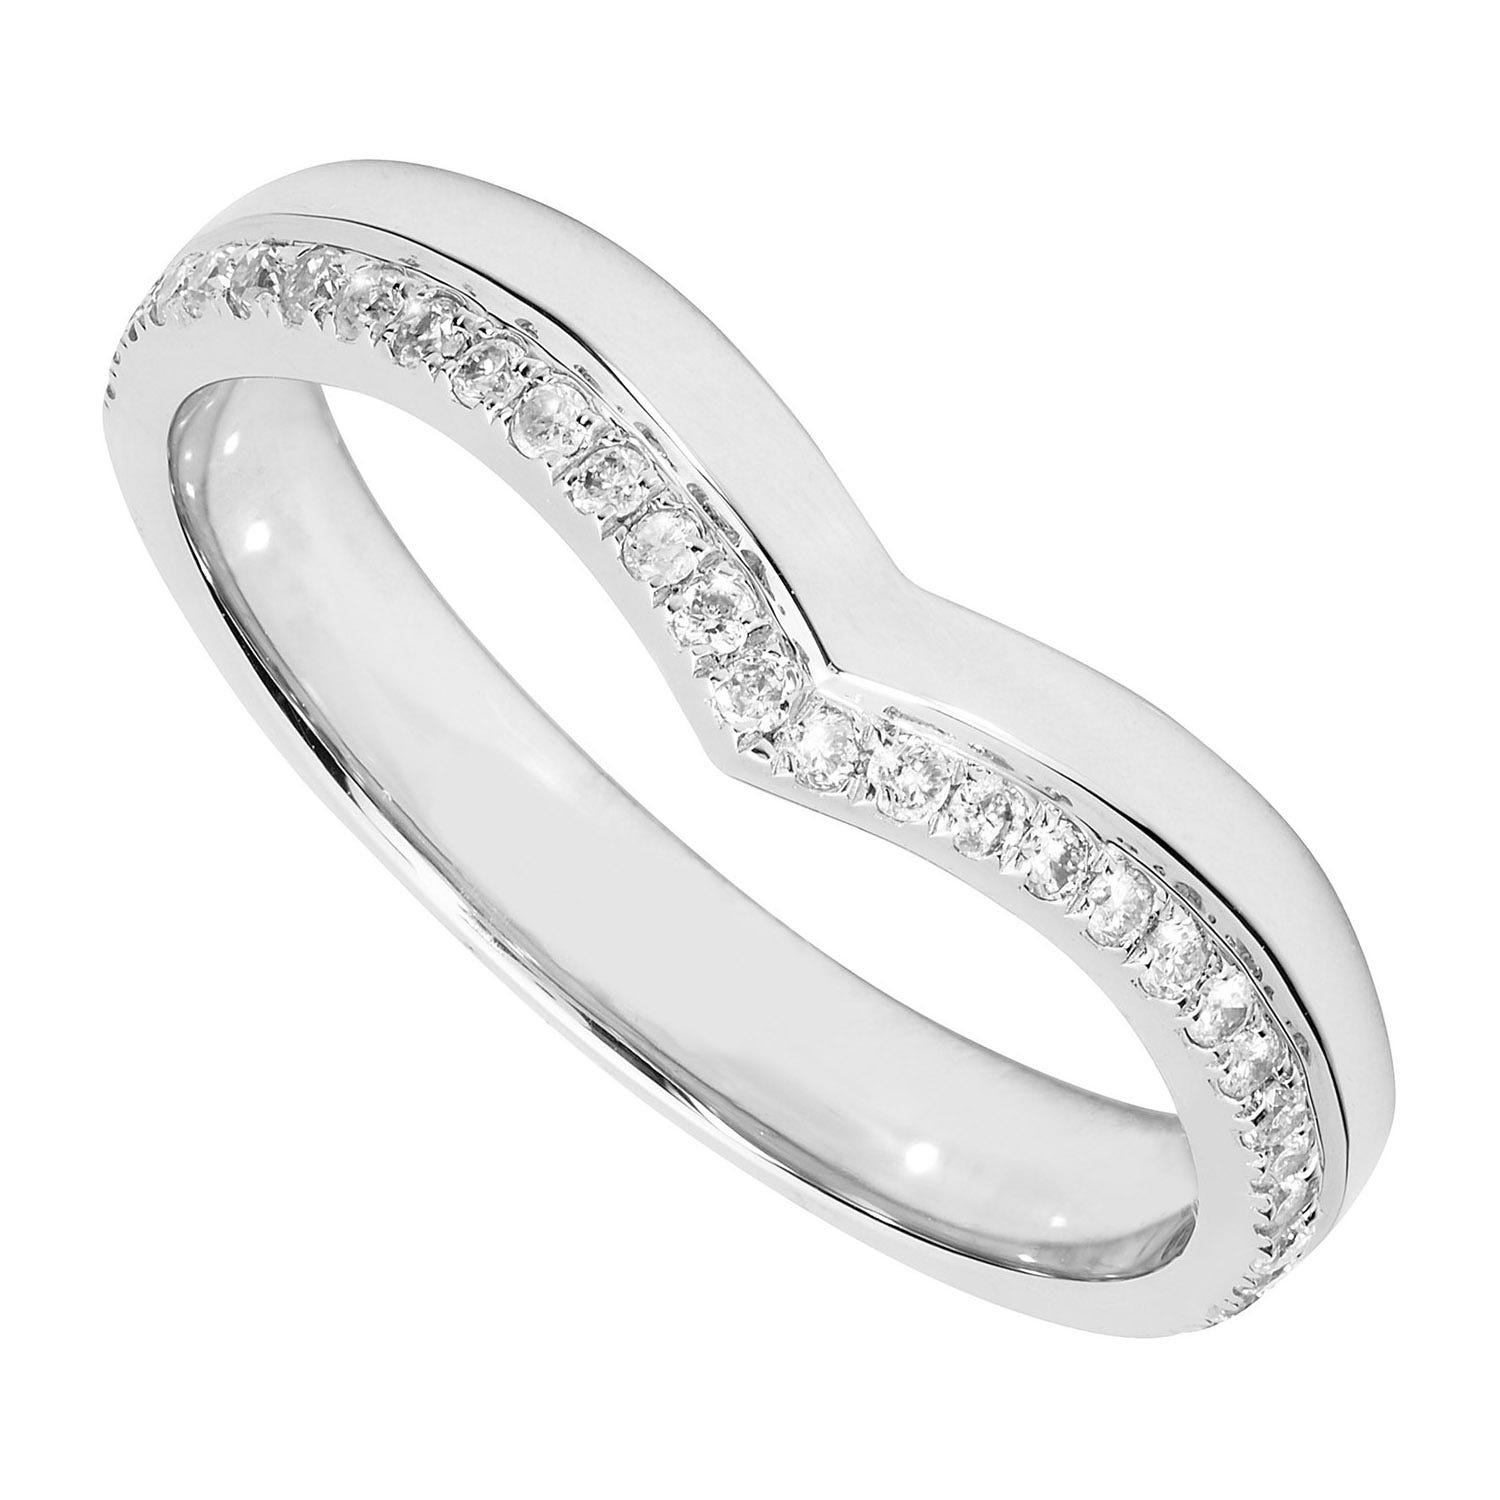 Ladies' platinum 0.15 carat diamond wishbone wedding ring